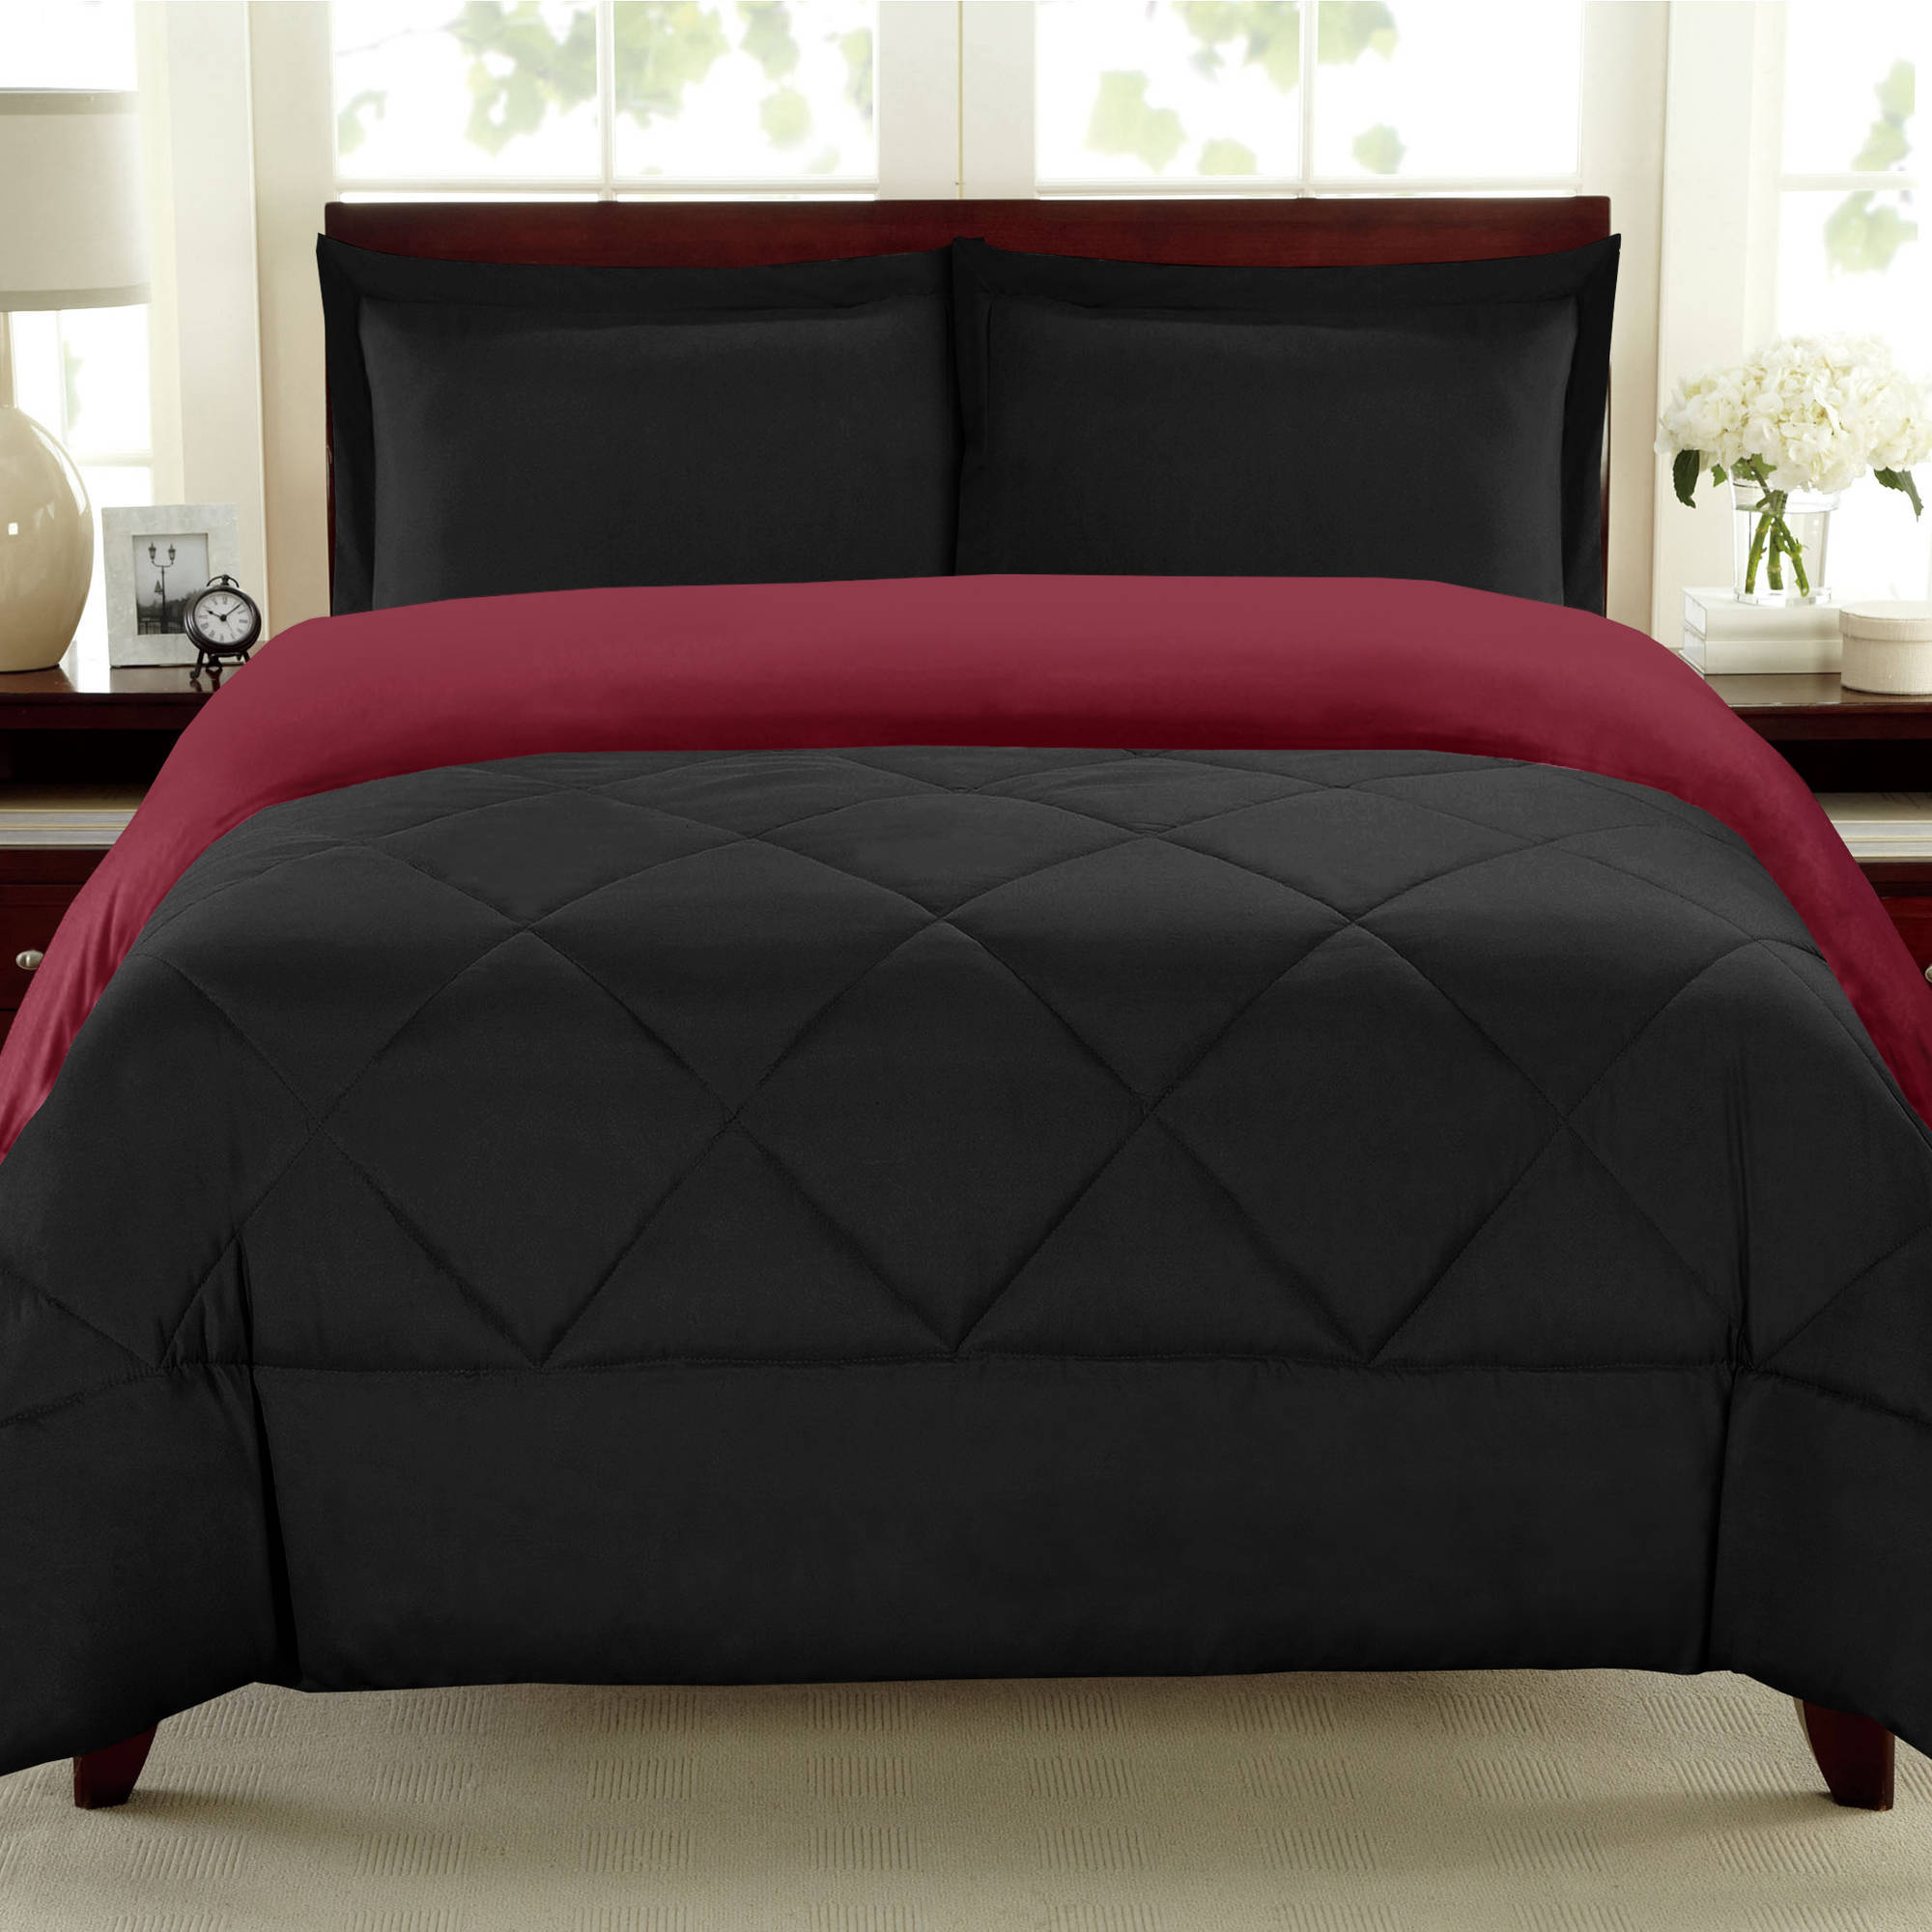 Down Alternative Comforter Reversible 3-Piece Bedding Set, 90 GSM